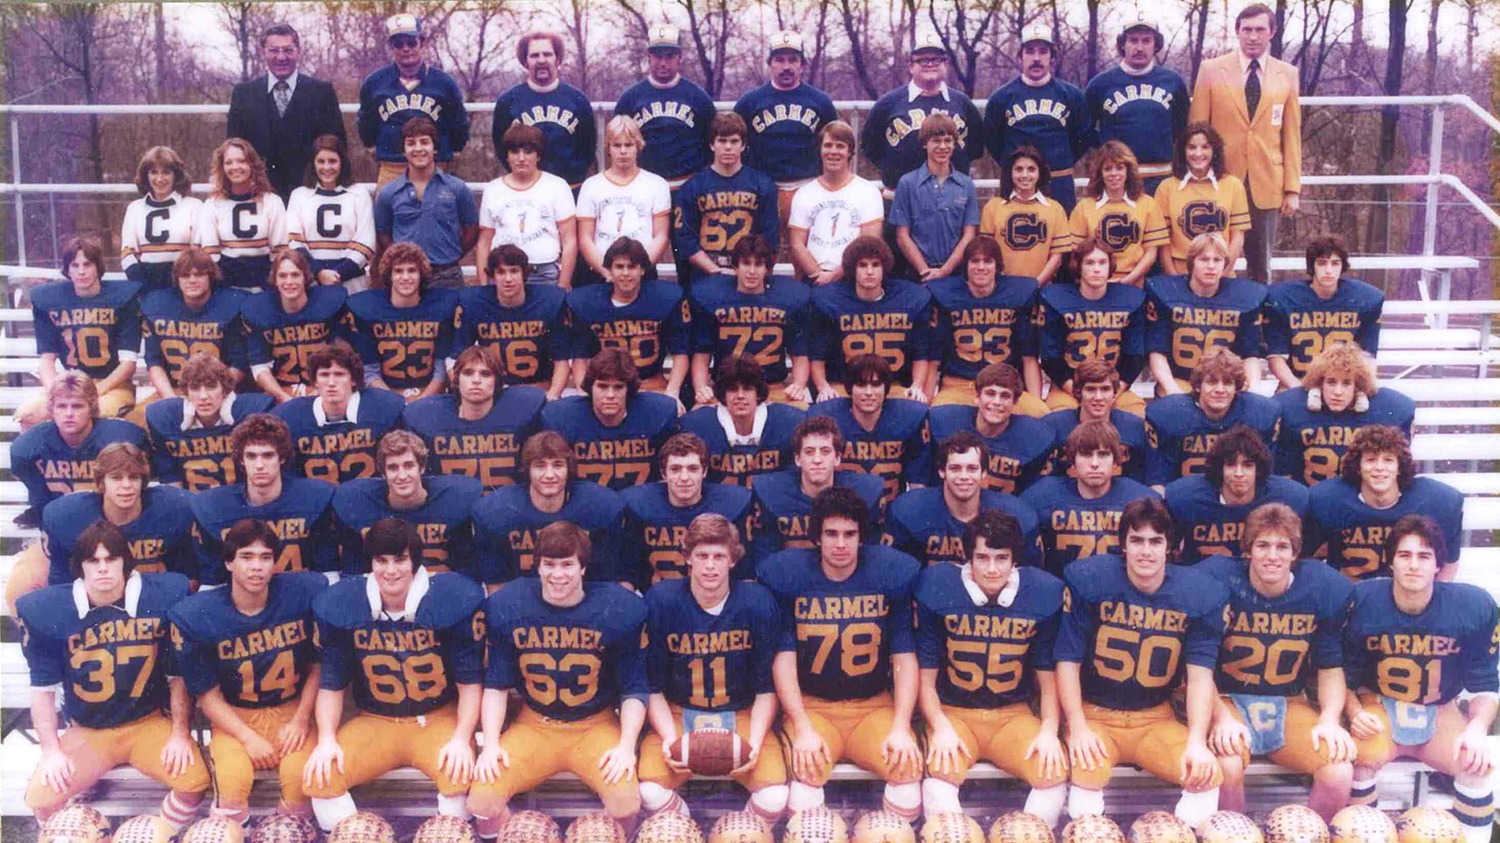 The members of the 1978 Carmel High School football team, cheerleaders and coaches are, first row from left, John Hare, Mike Woodward, Kevin Mullen, Jeff Graves, David Broecker, Rich Huber, Greg Reynolds, Tim Bejin, Rich Sharp and Joe Bejin; second row from left, David Delagrange, Jim Eaton, Tim Hodges, Rick Williams, Todd King, Bob Martin, Mark Myers, Mike Hartman, Dane Fellmeth and Dean Aurelius; third row from left, Mark Stroinski, Chris Cook, Nick Kunesh, Kevin Vogt, David Blanton, David Delello, Courtney Scott, John Ohmer, Tim Padgett, Steve Olson and Rob Hamman; fourth row from left, Jay Linville, Mike Goens, Jeff Merchant, Kevin Eagle, Eric Jungnickel, Perry Jasin, Bill Frey, Mark Mann, Rick Ardaiolo, Mike Kaster and Brian Hughes; fifth row from left, Mary Wiley, Kelly Autry, Tracy Hinshaw, Ron Baldridge, Charles Shank, Rick Aichelle, Jeff Smith, David Hamm, Tim Paramore, Shirley Gilliam, Tracy Spille and Denise Deckard; and sixth row from left, Dale Graham, John Pesavento, Keith Fiedler, Craig Hauss, Dick Dullaghan, Dave Van Horn, Kevin Roth, Gregg Gossard and Bill Shepherd.